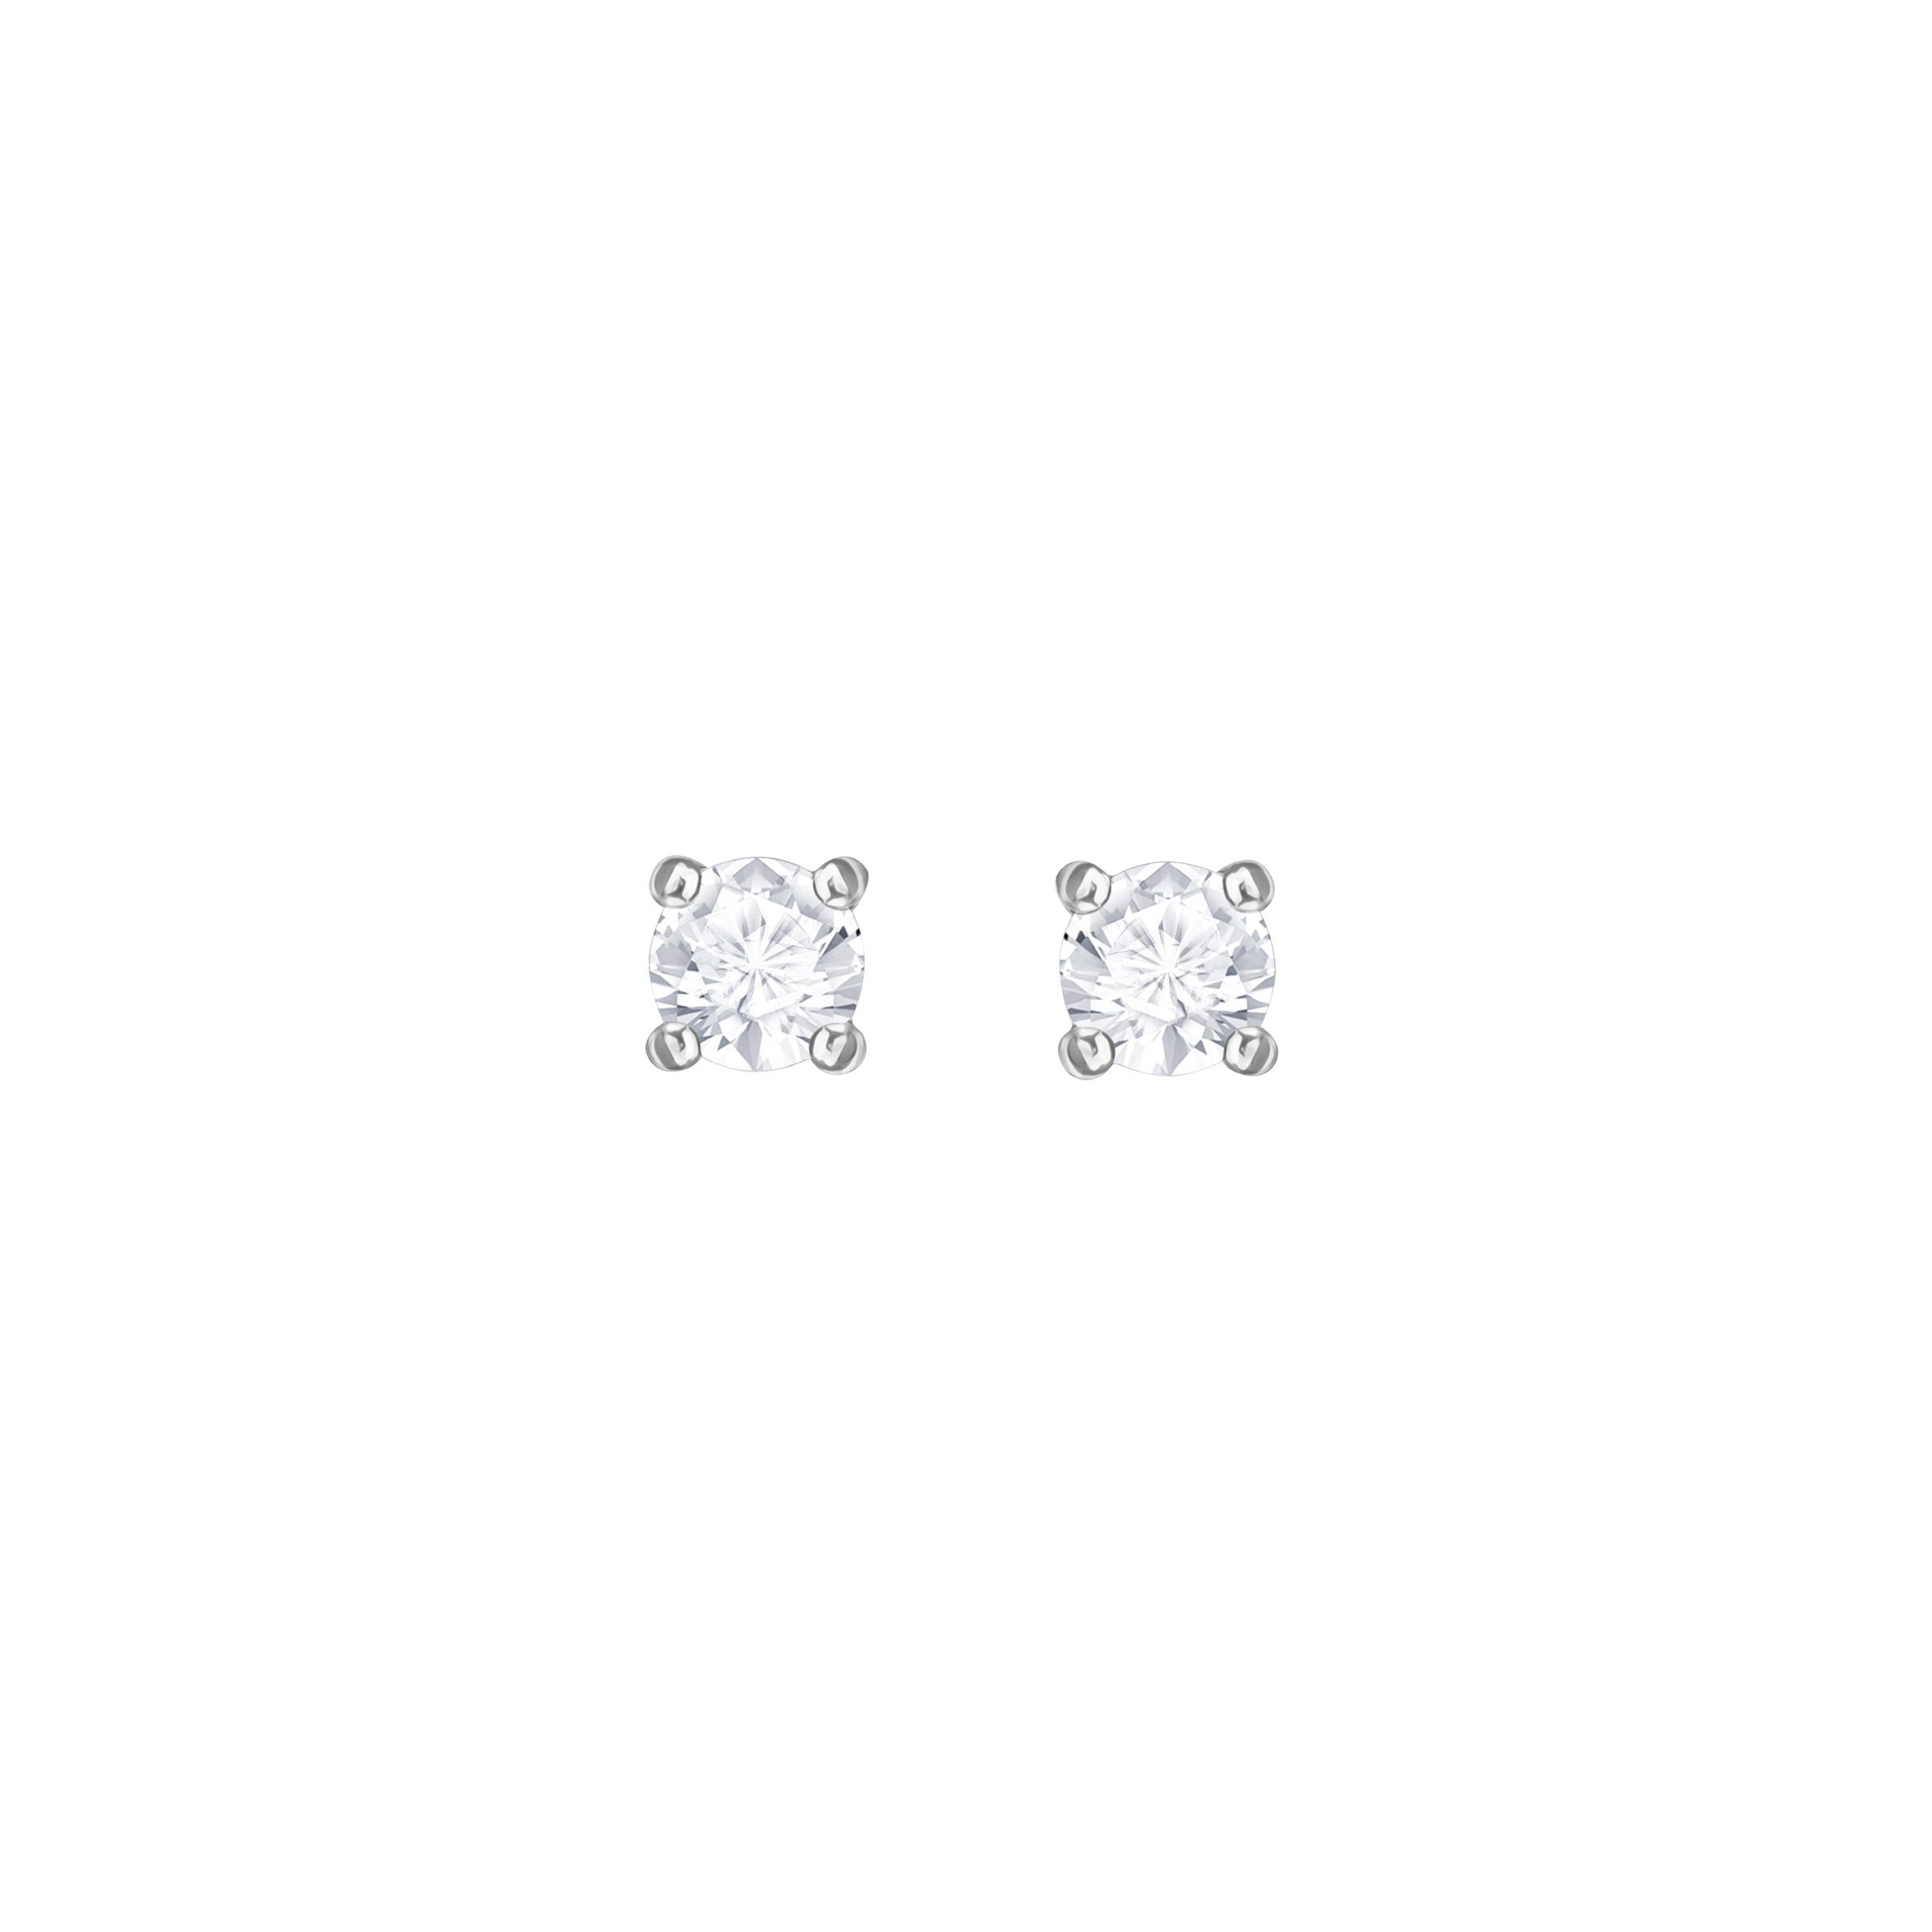 Swarovski Attract Round Pierced Earrings, White, Rhodium Pl, White